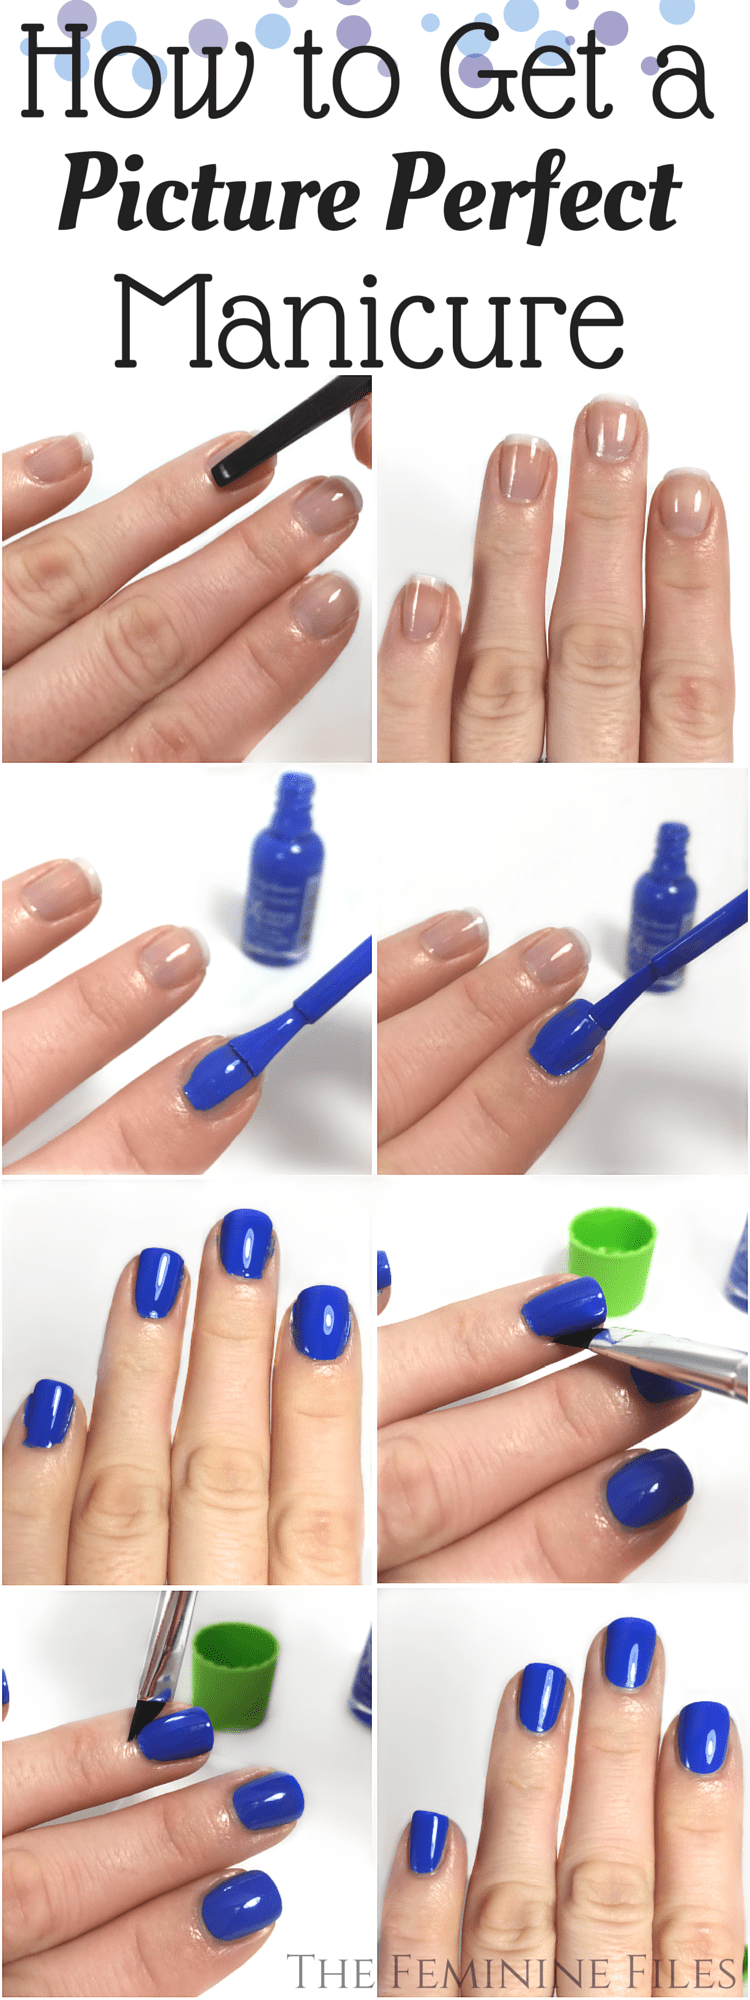 How To Get A Picture Perfect Manicure